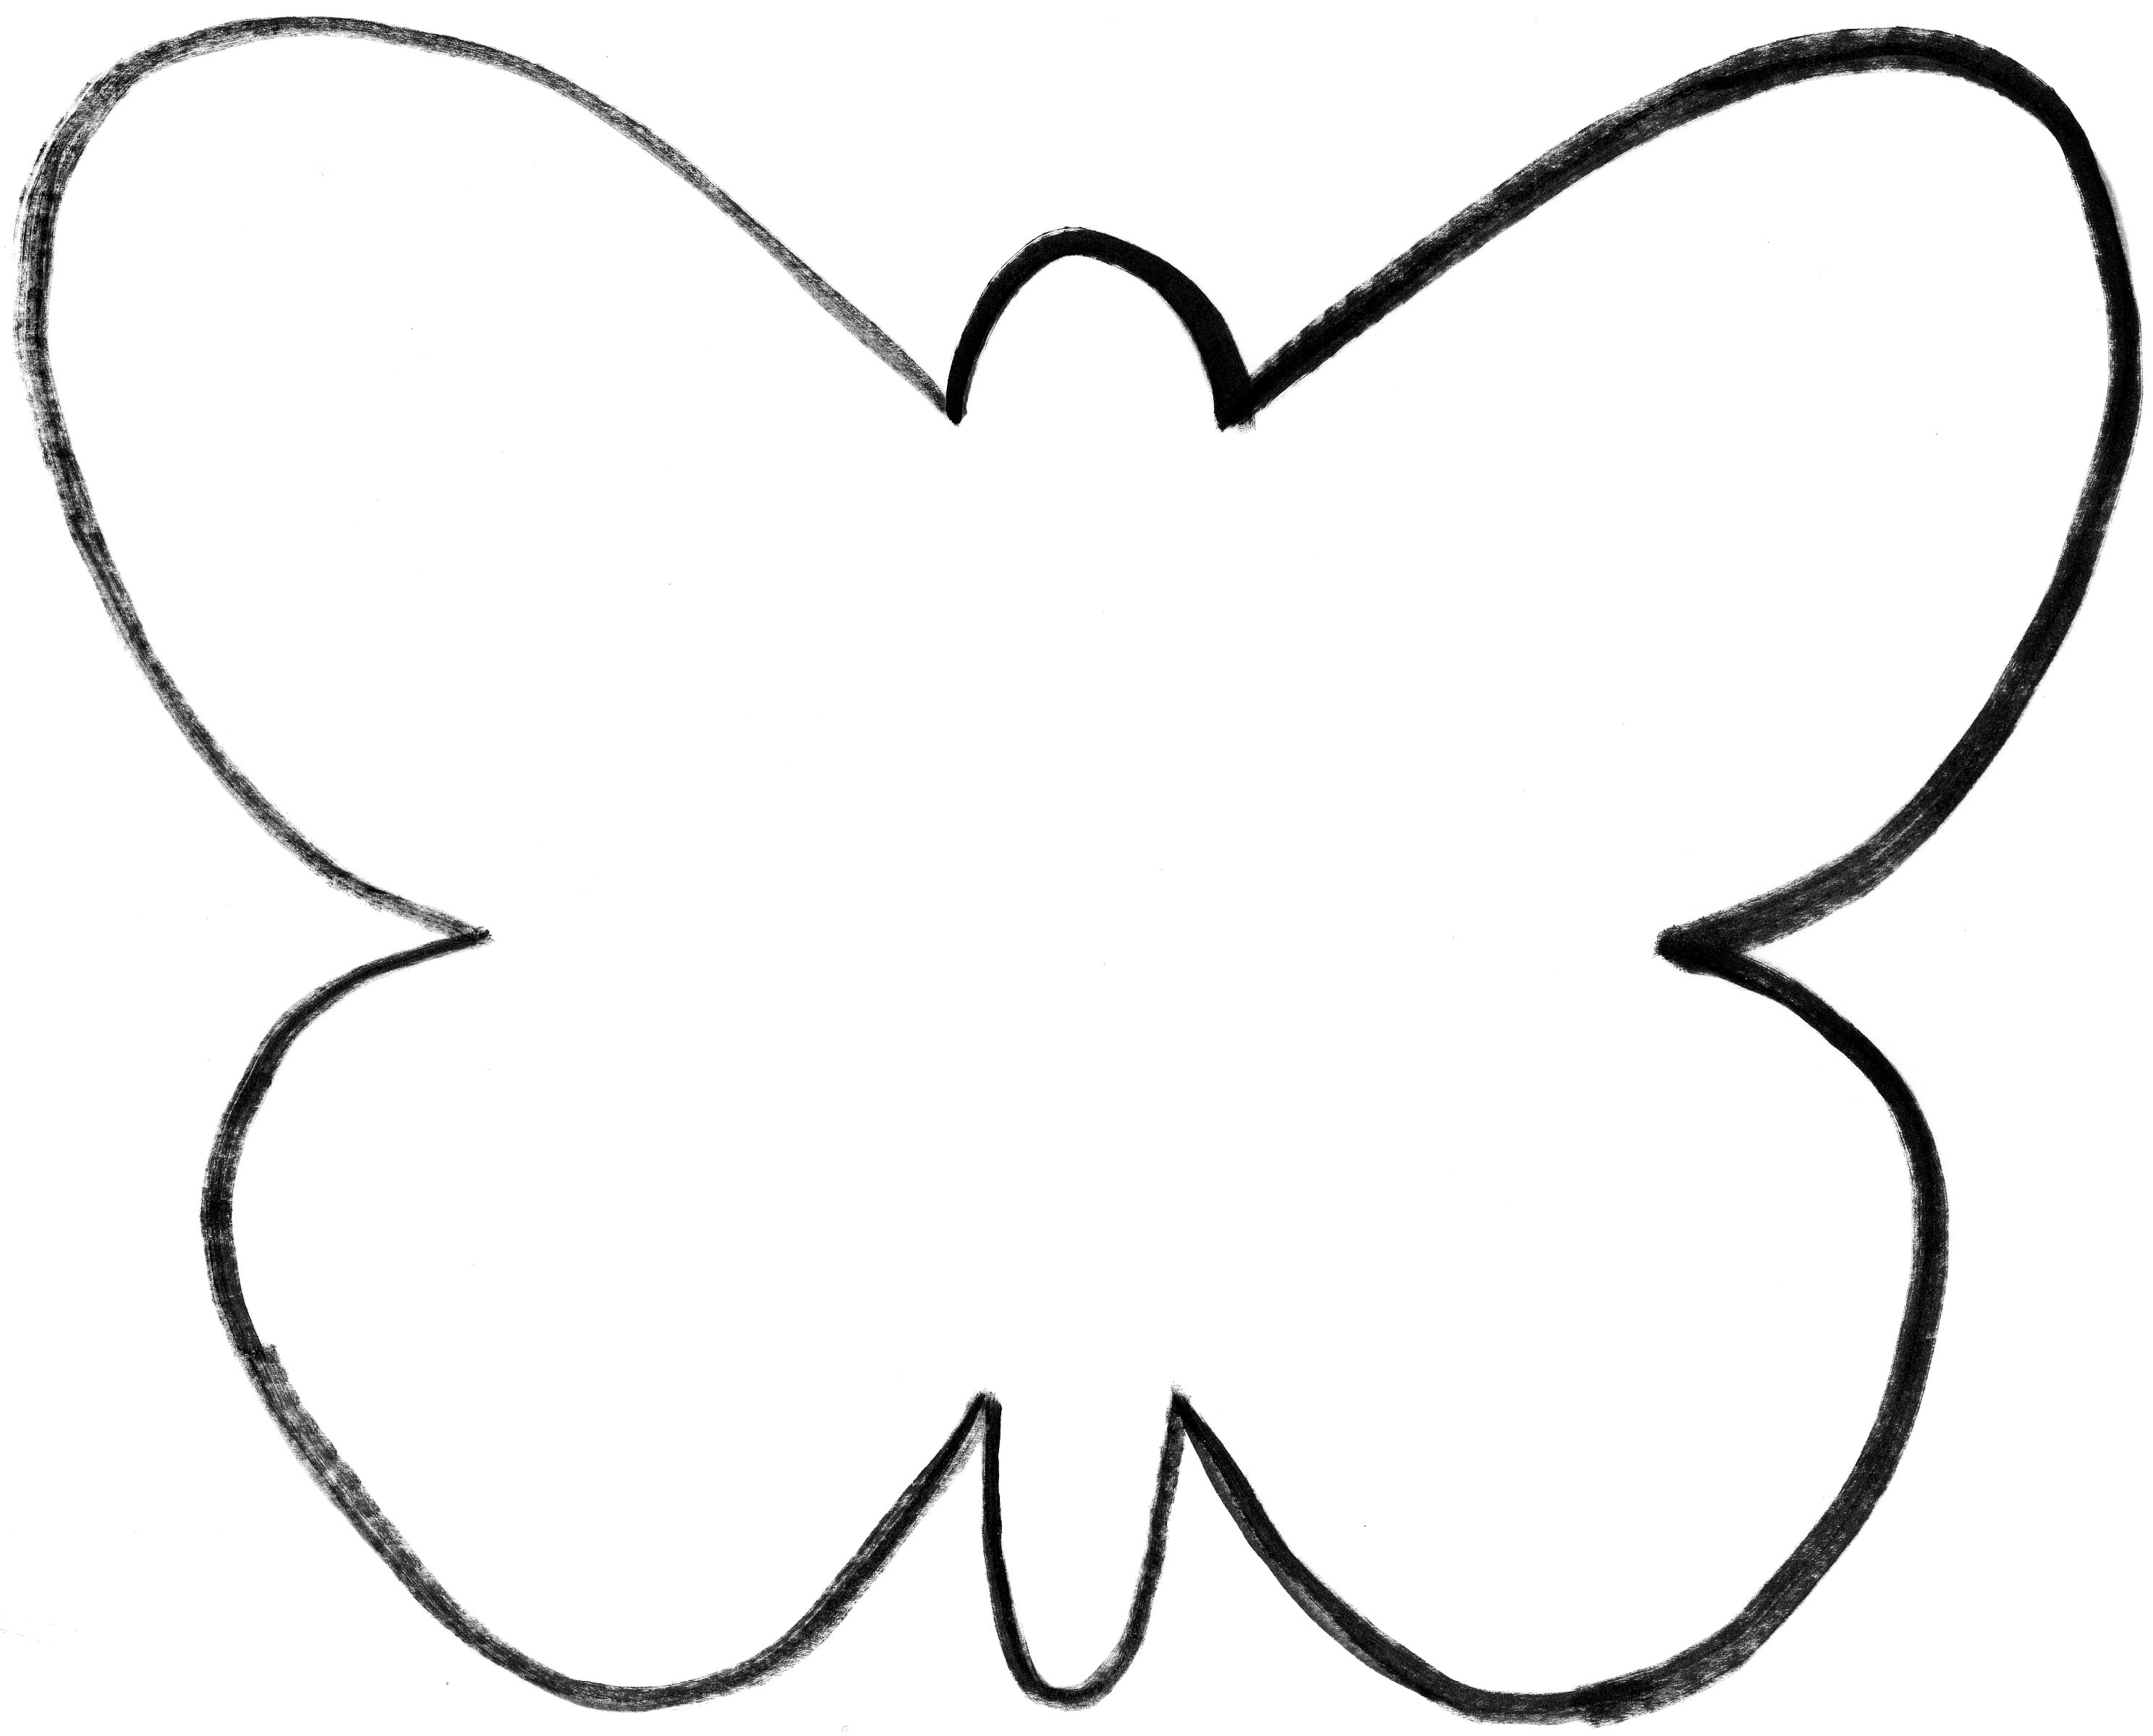 Outline free download best. Clipart butterfly shape